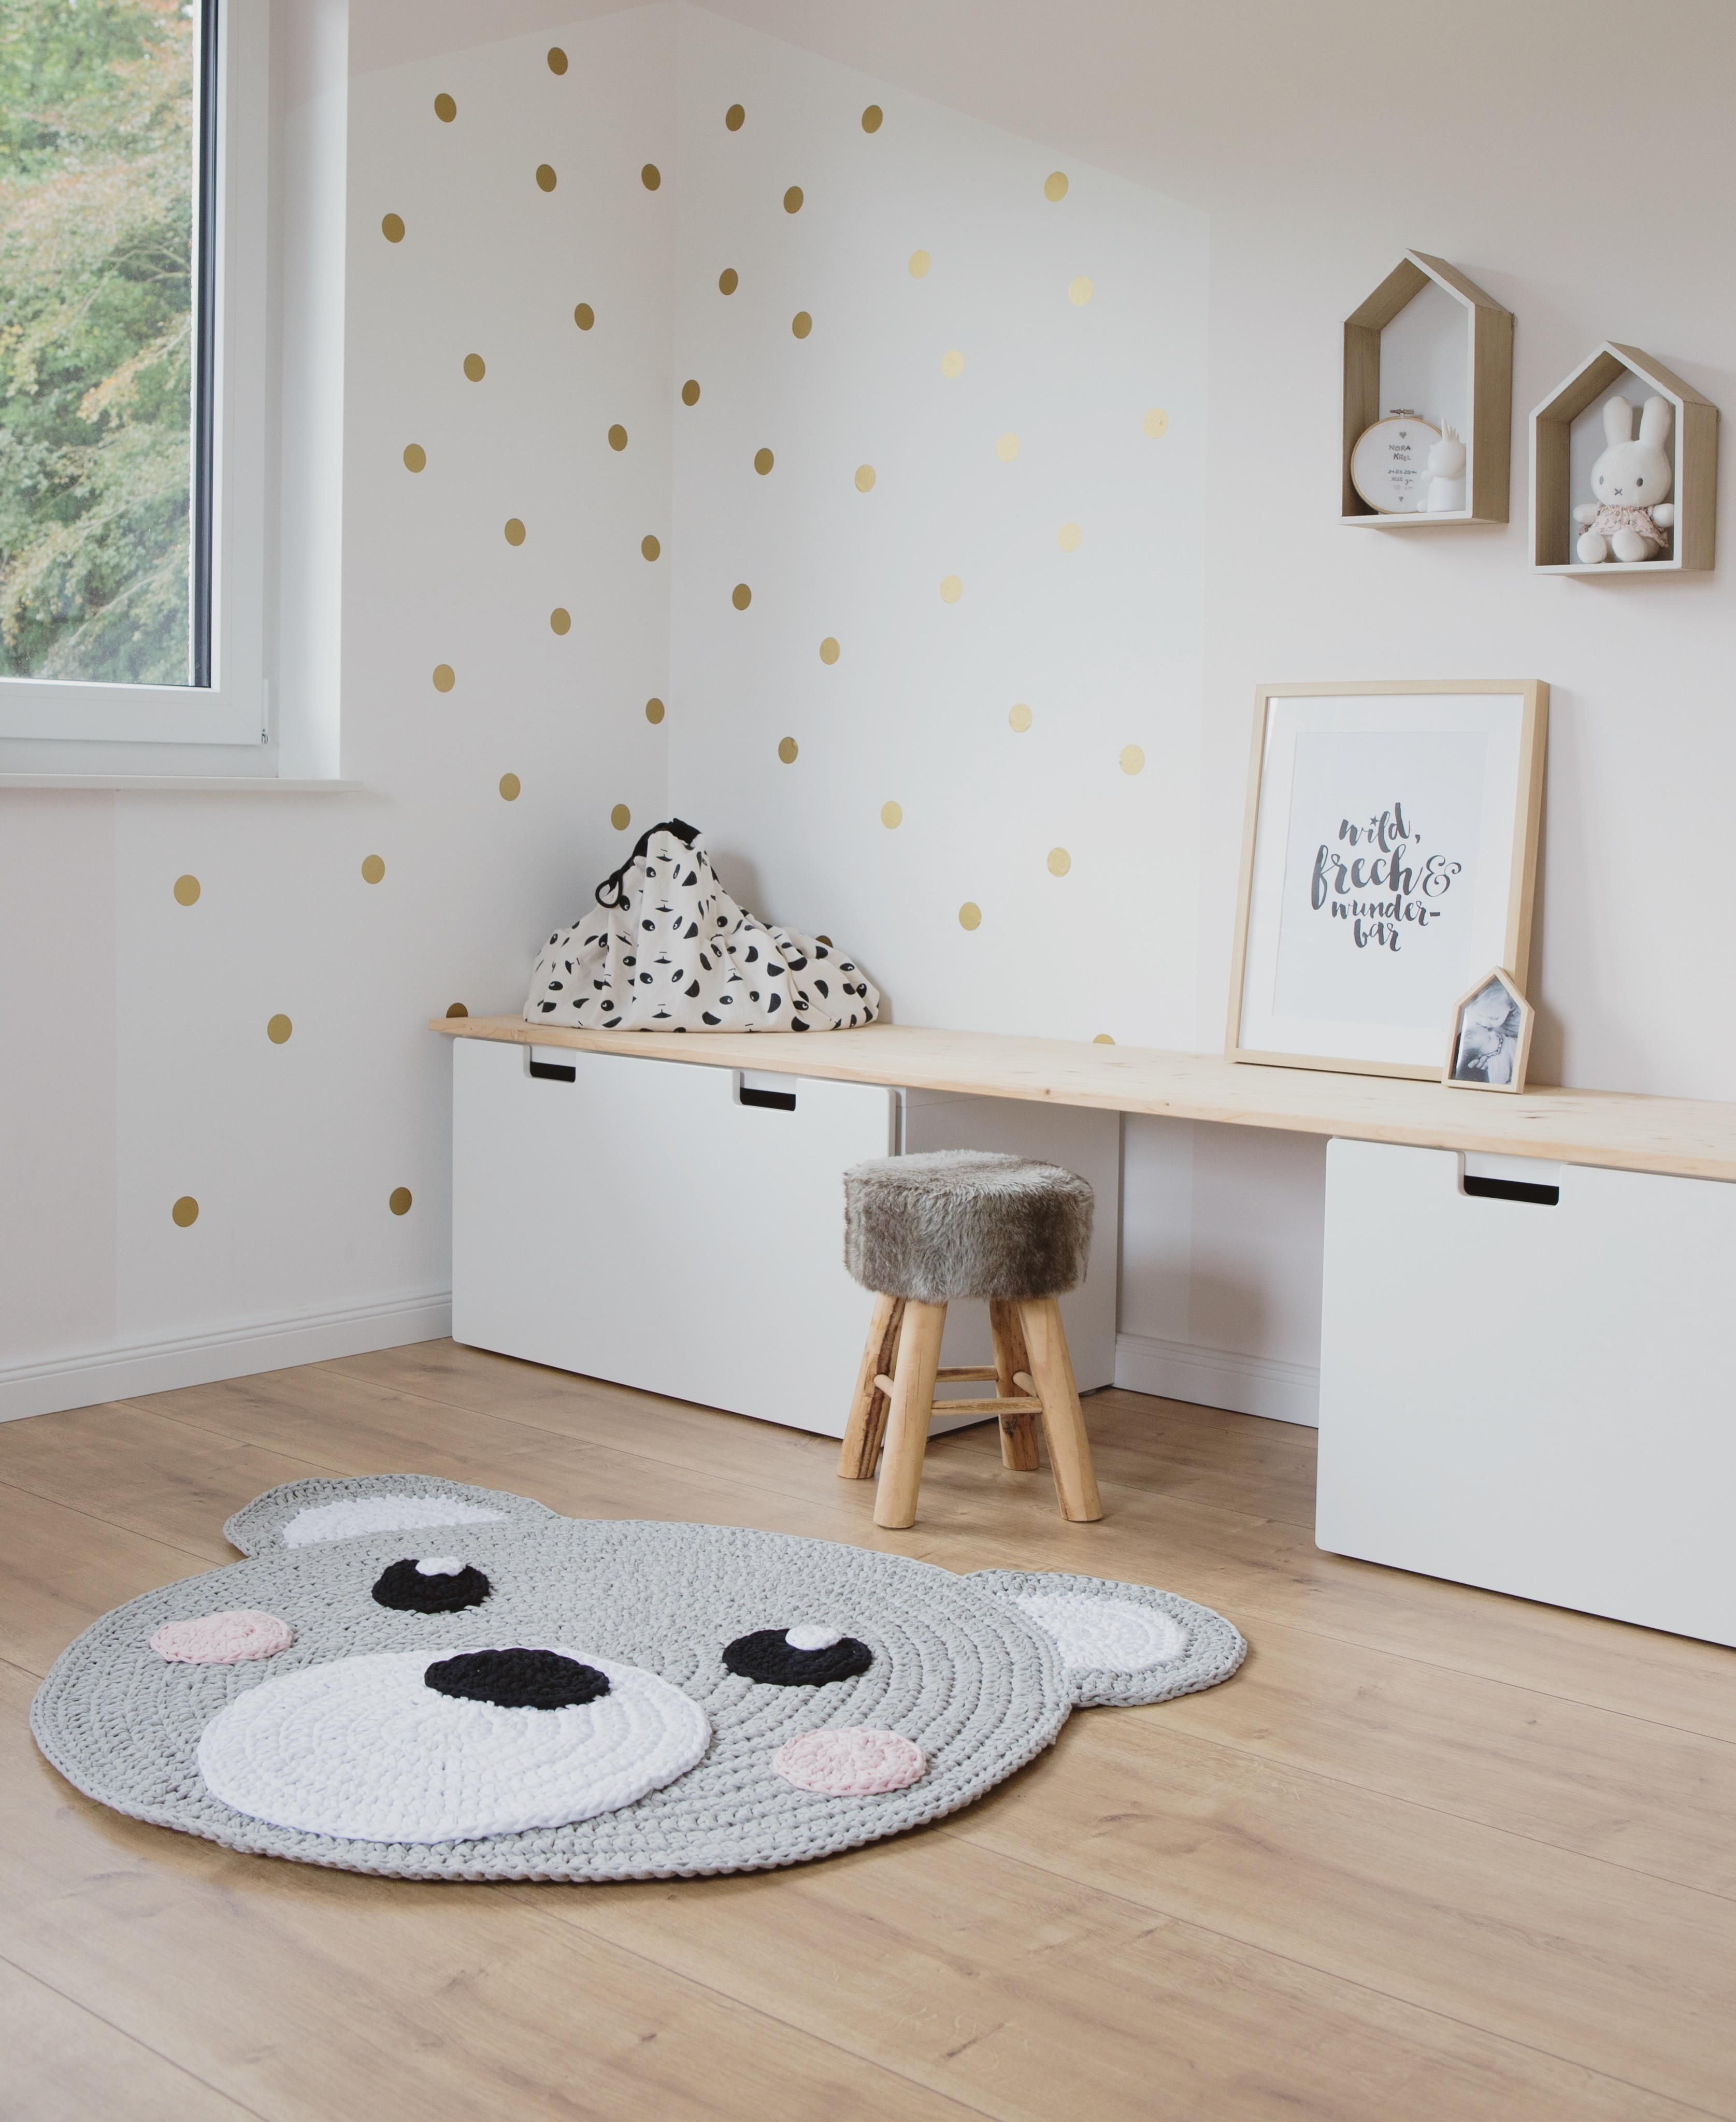 kinderzimmer in 2019 kinderzimmer kinder zimmer. Black Bedroom Furniture Sets. Home Design Ideas